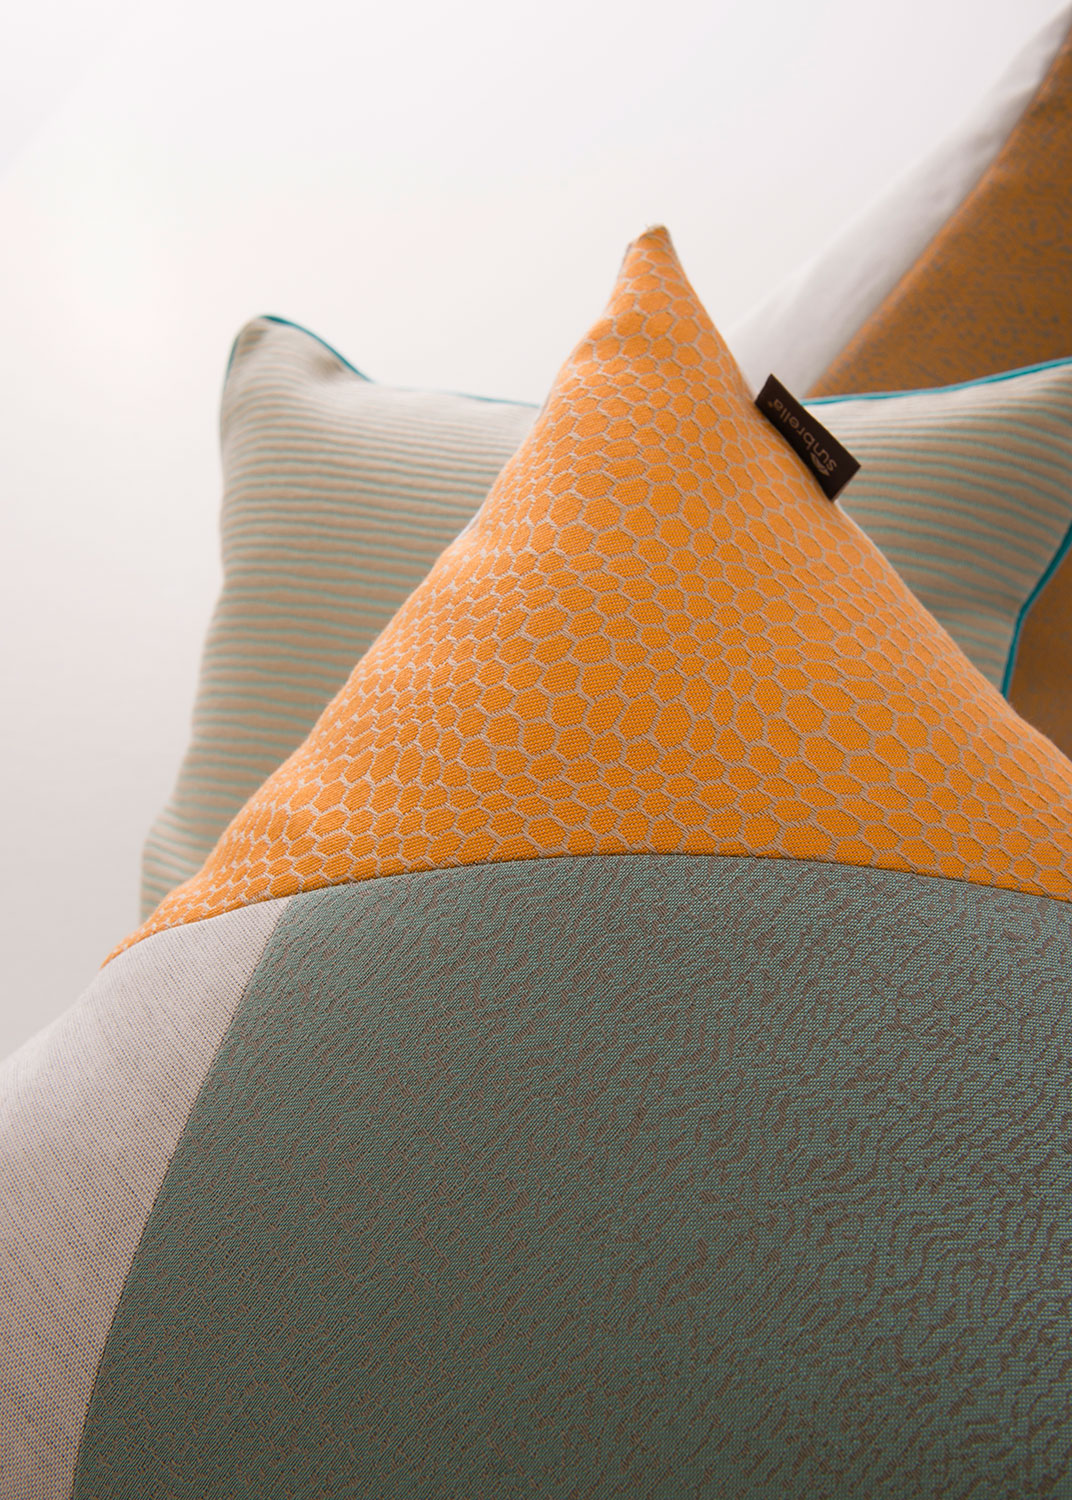 Different Sunbrella fabrics are sewn together for a unique geometric pattern.